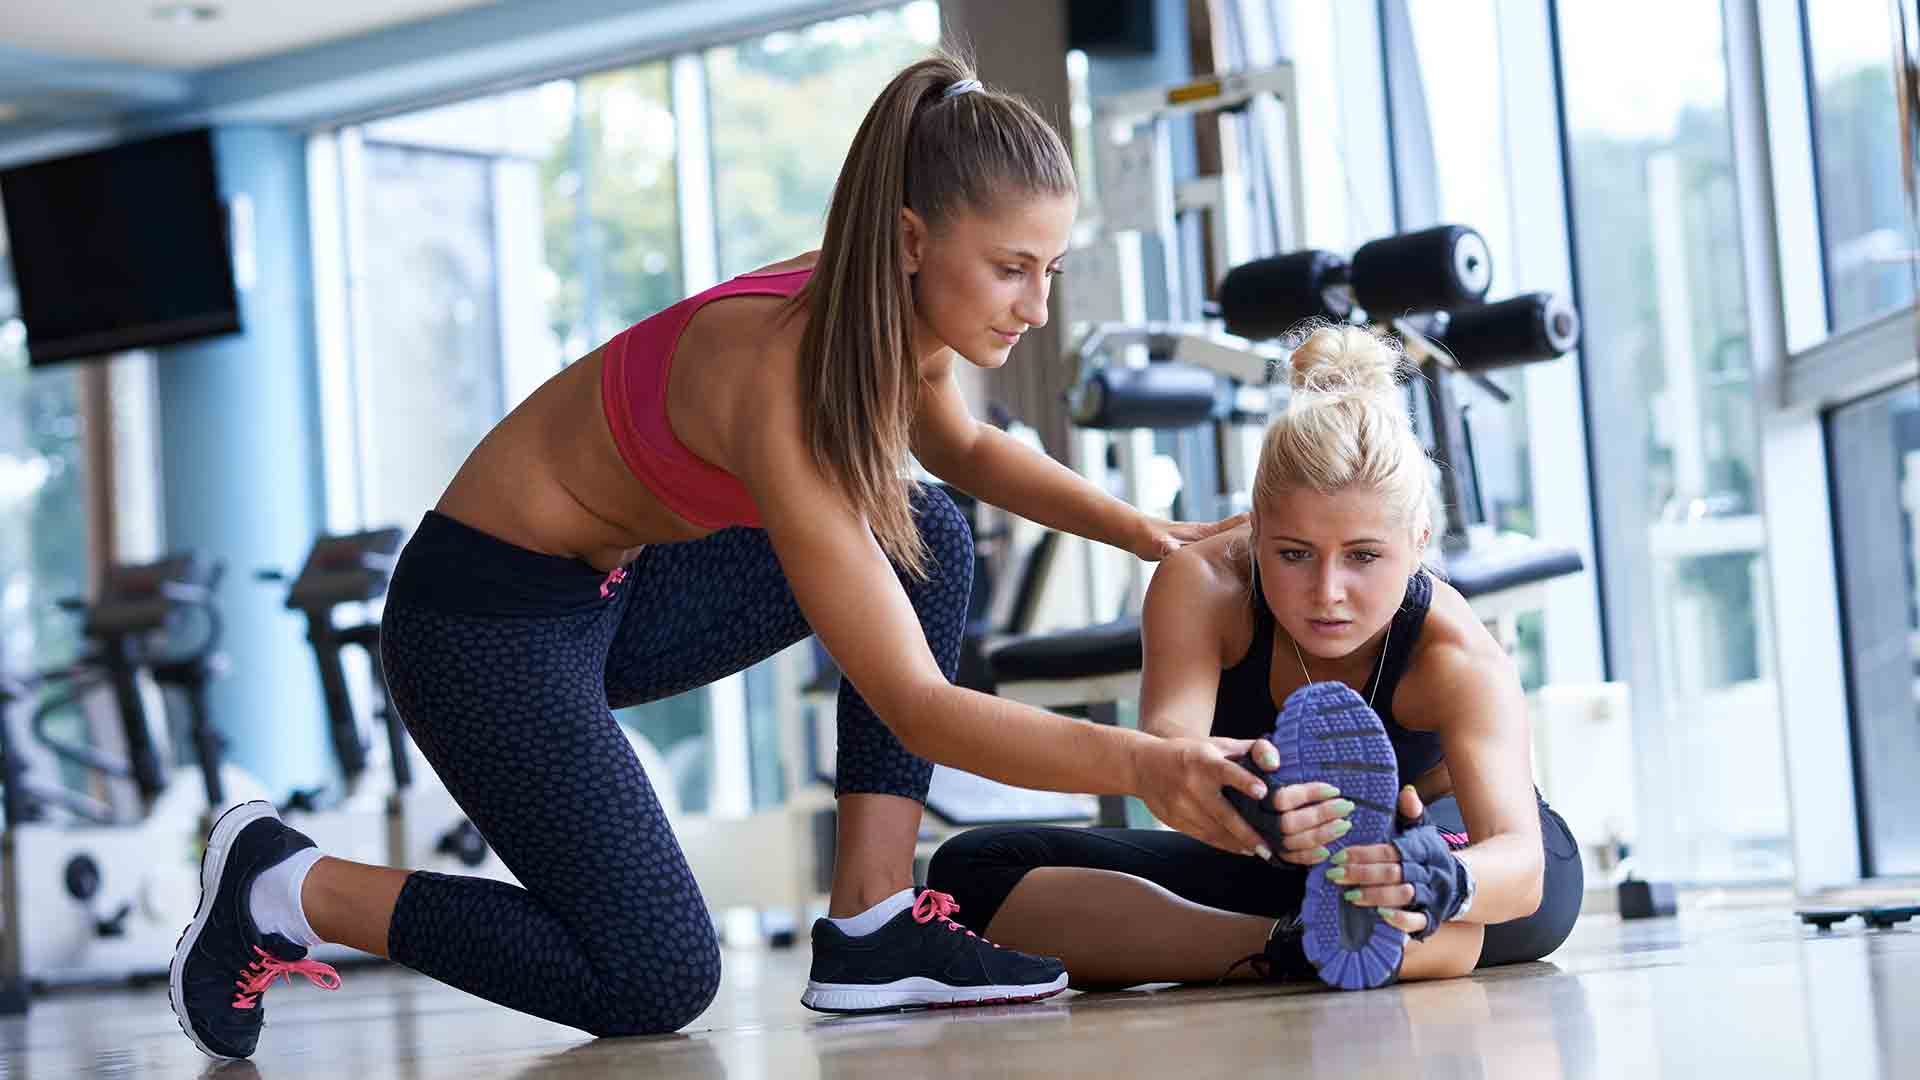 Personal Trainer: A Person That Motivates You To Achieve A Healthy Lifestyle